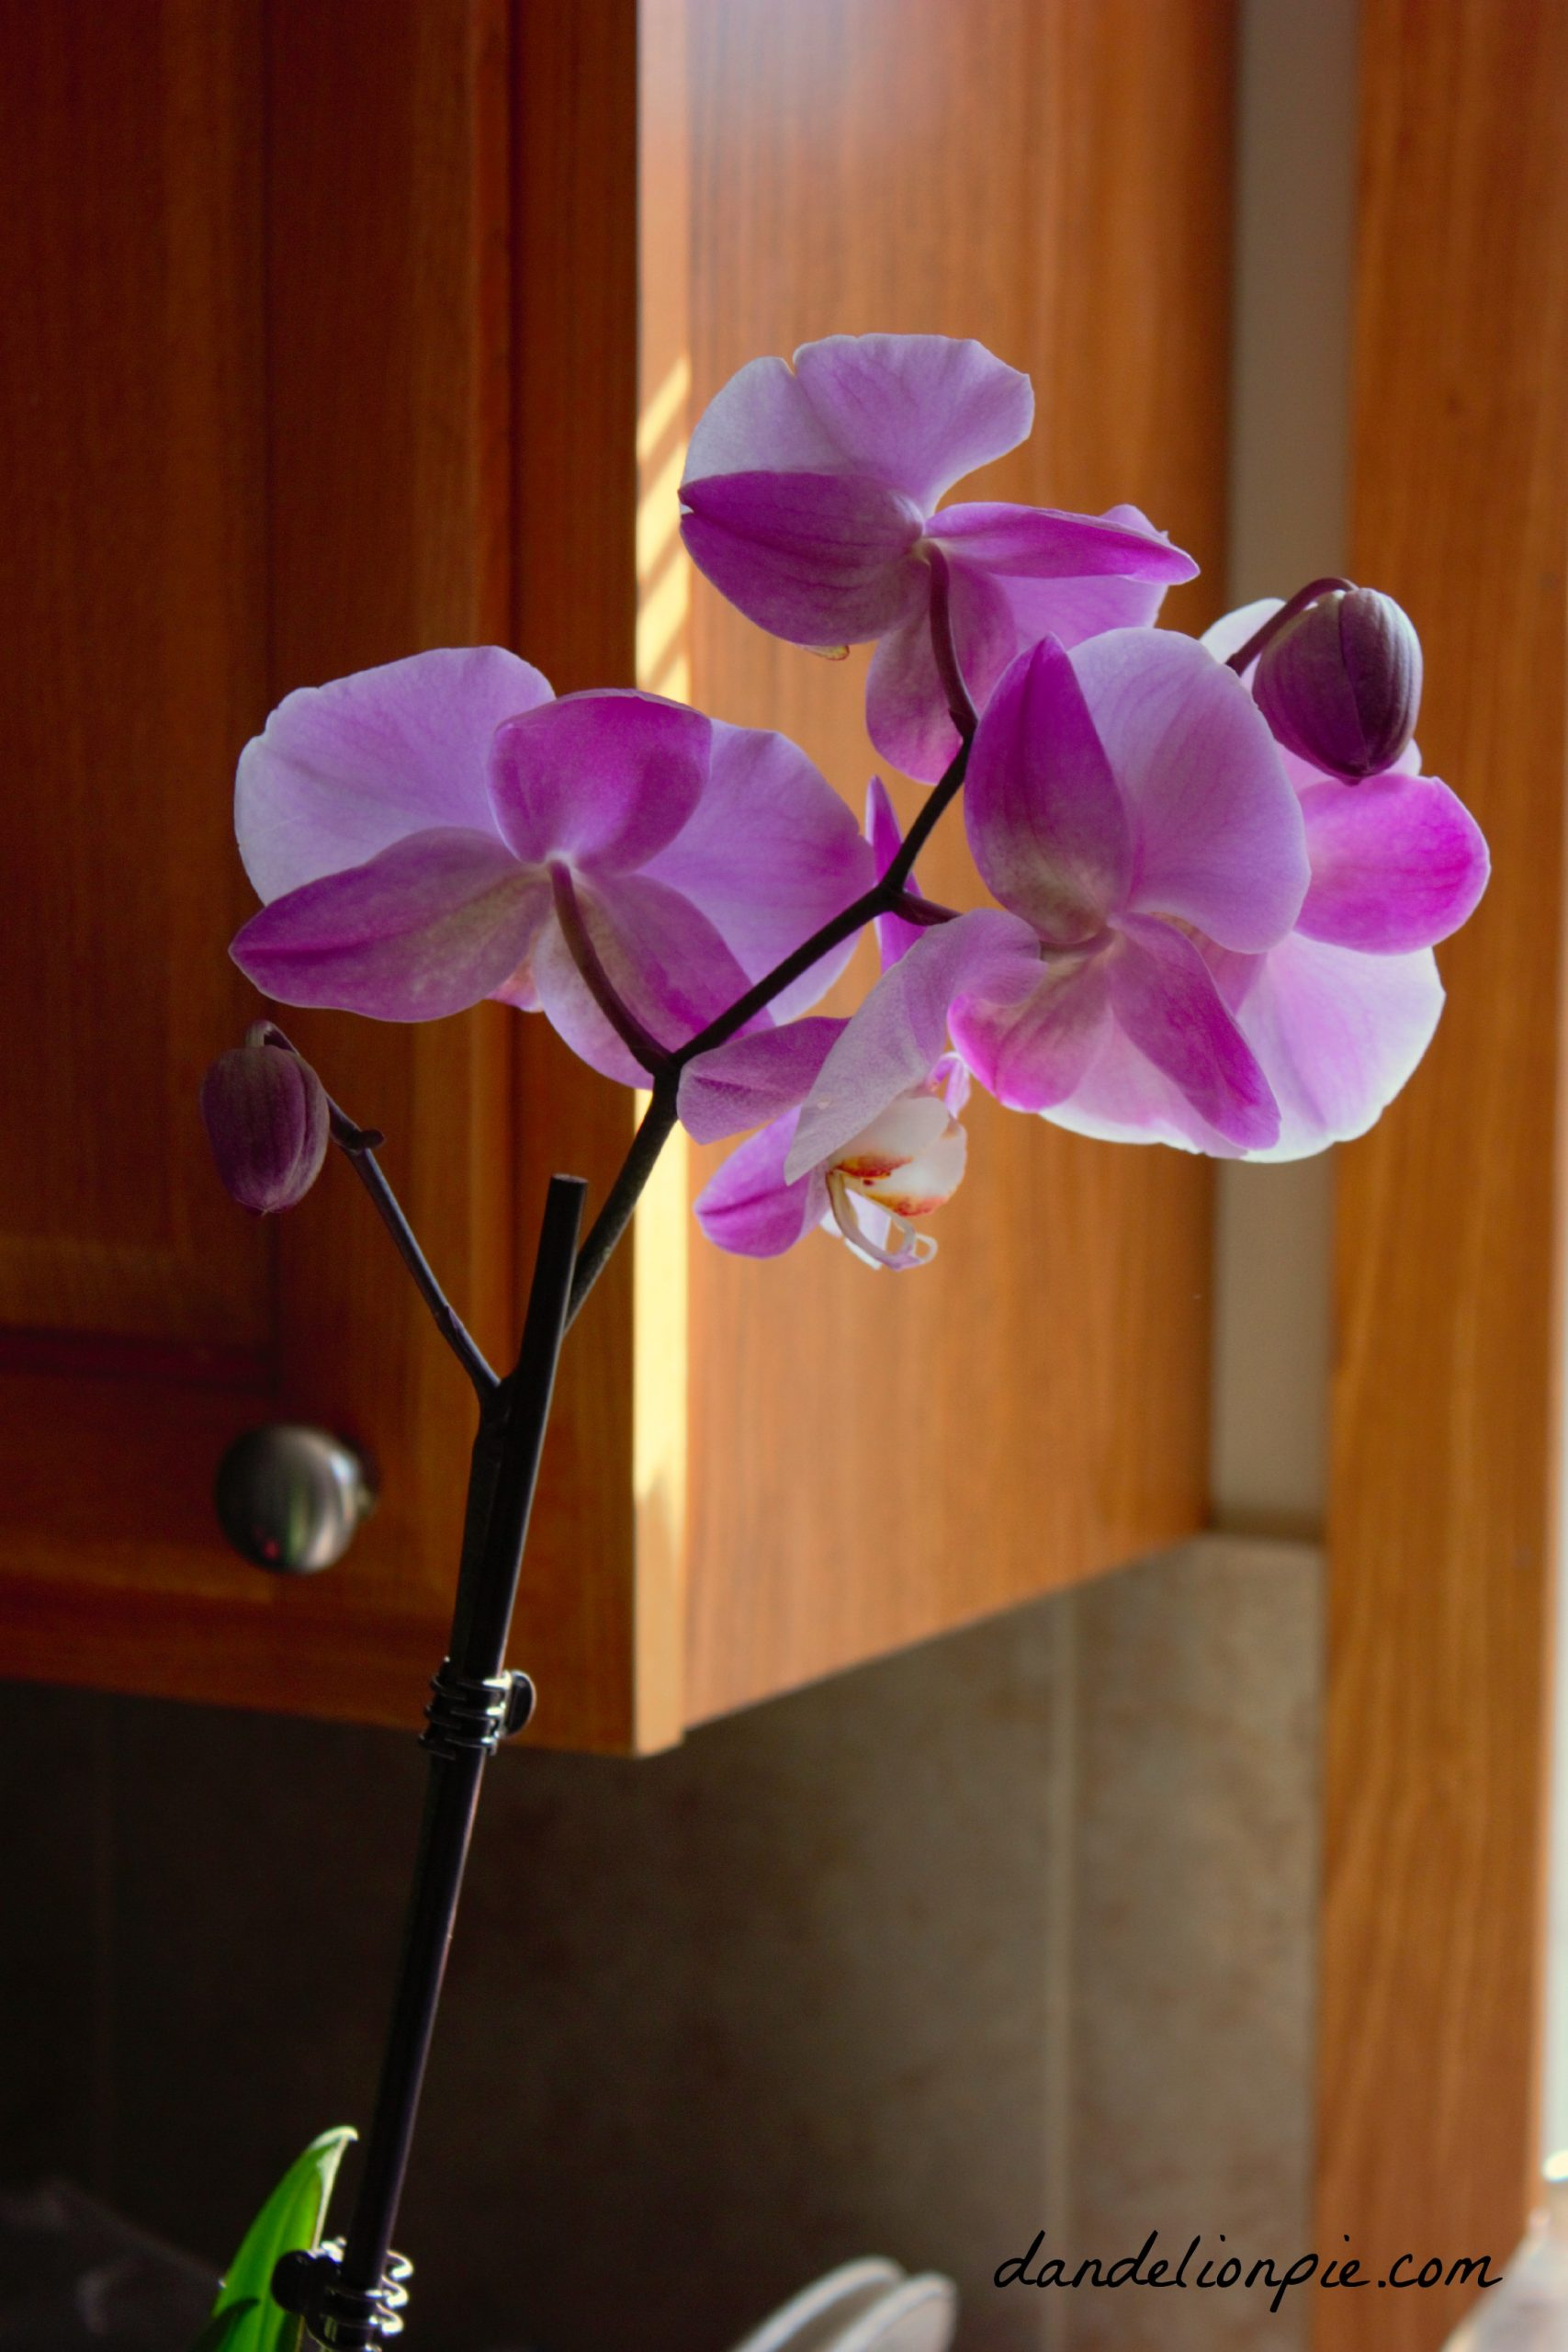 Warrior Man brought me an orchid!